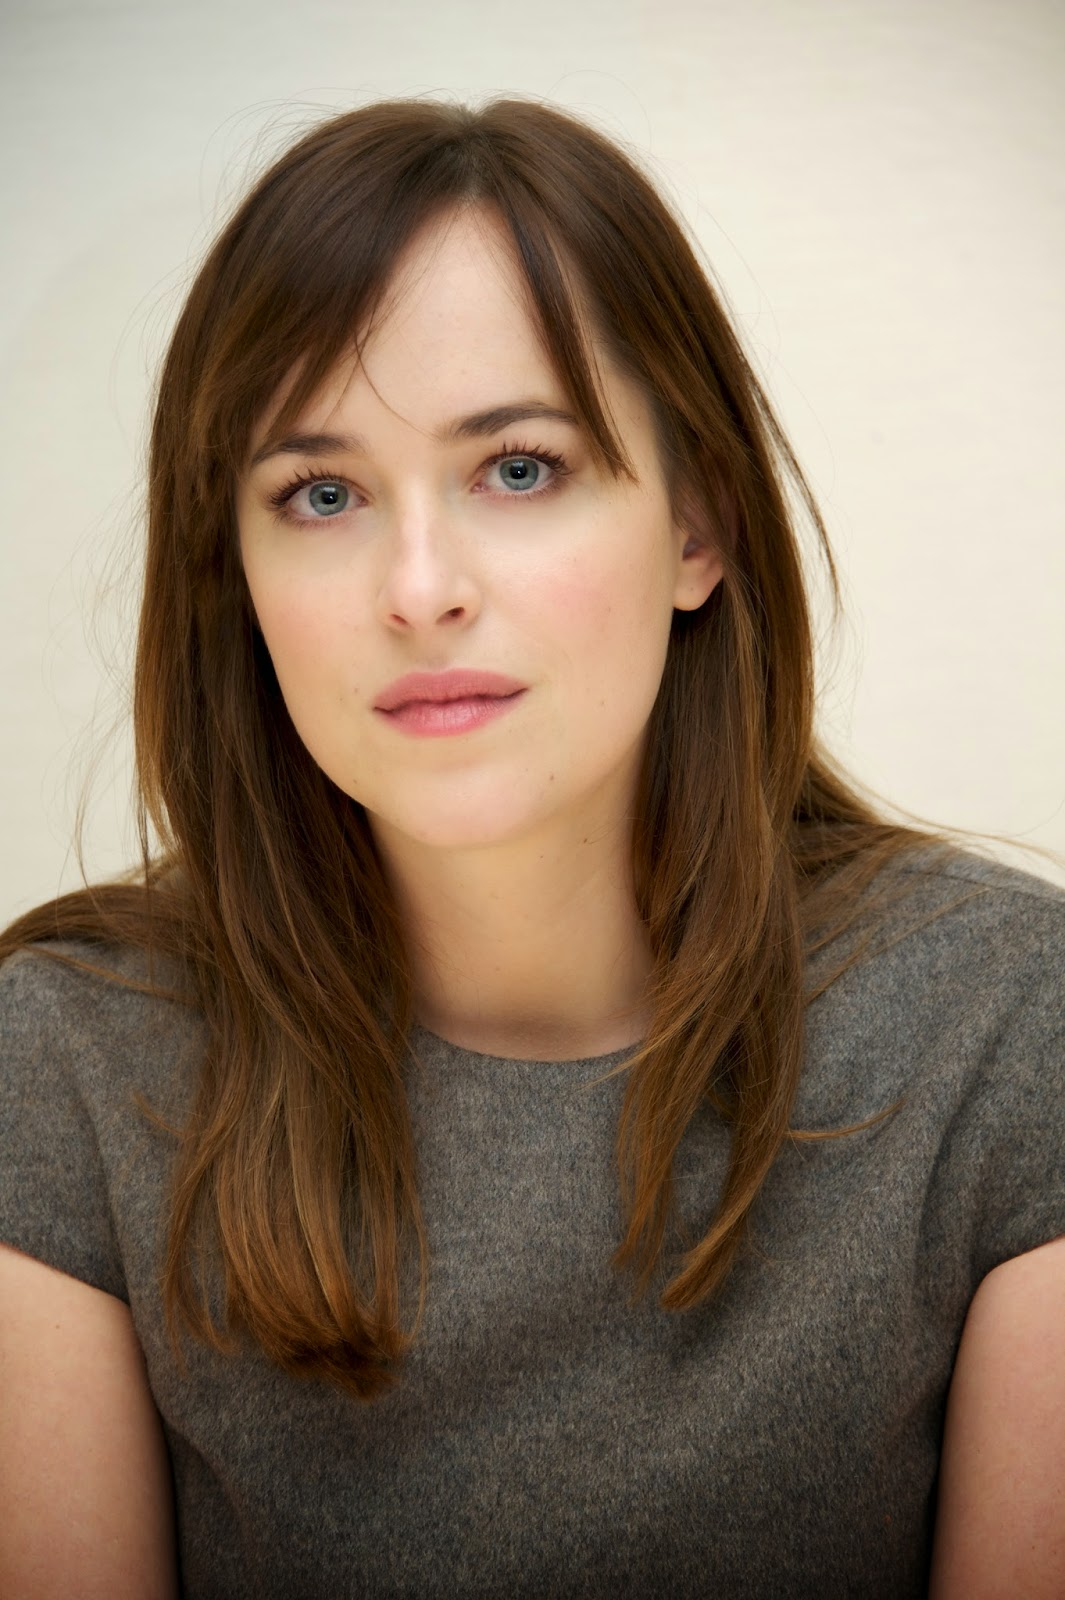 dakota johnson - photo #22